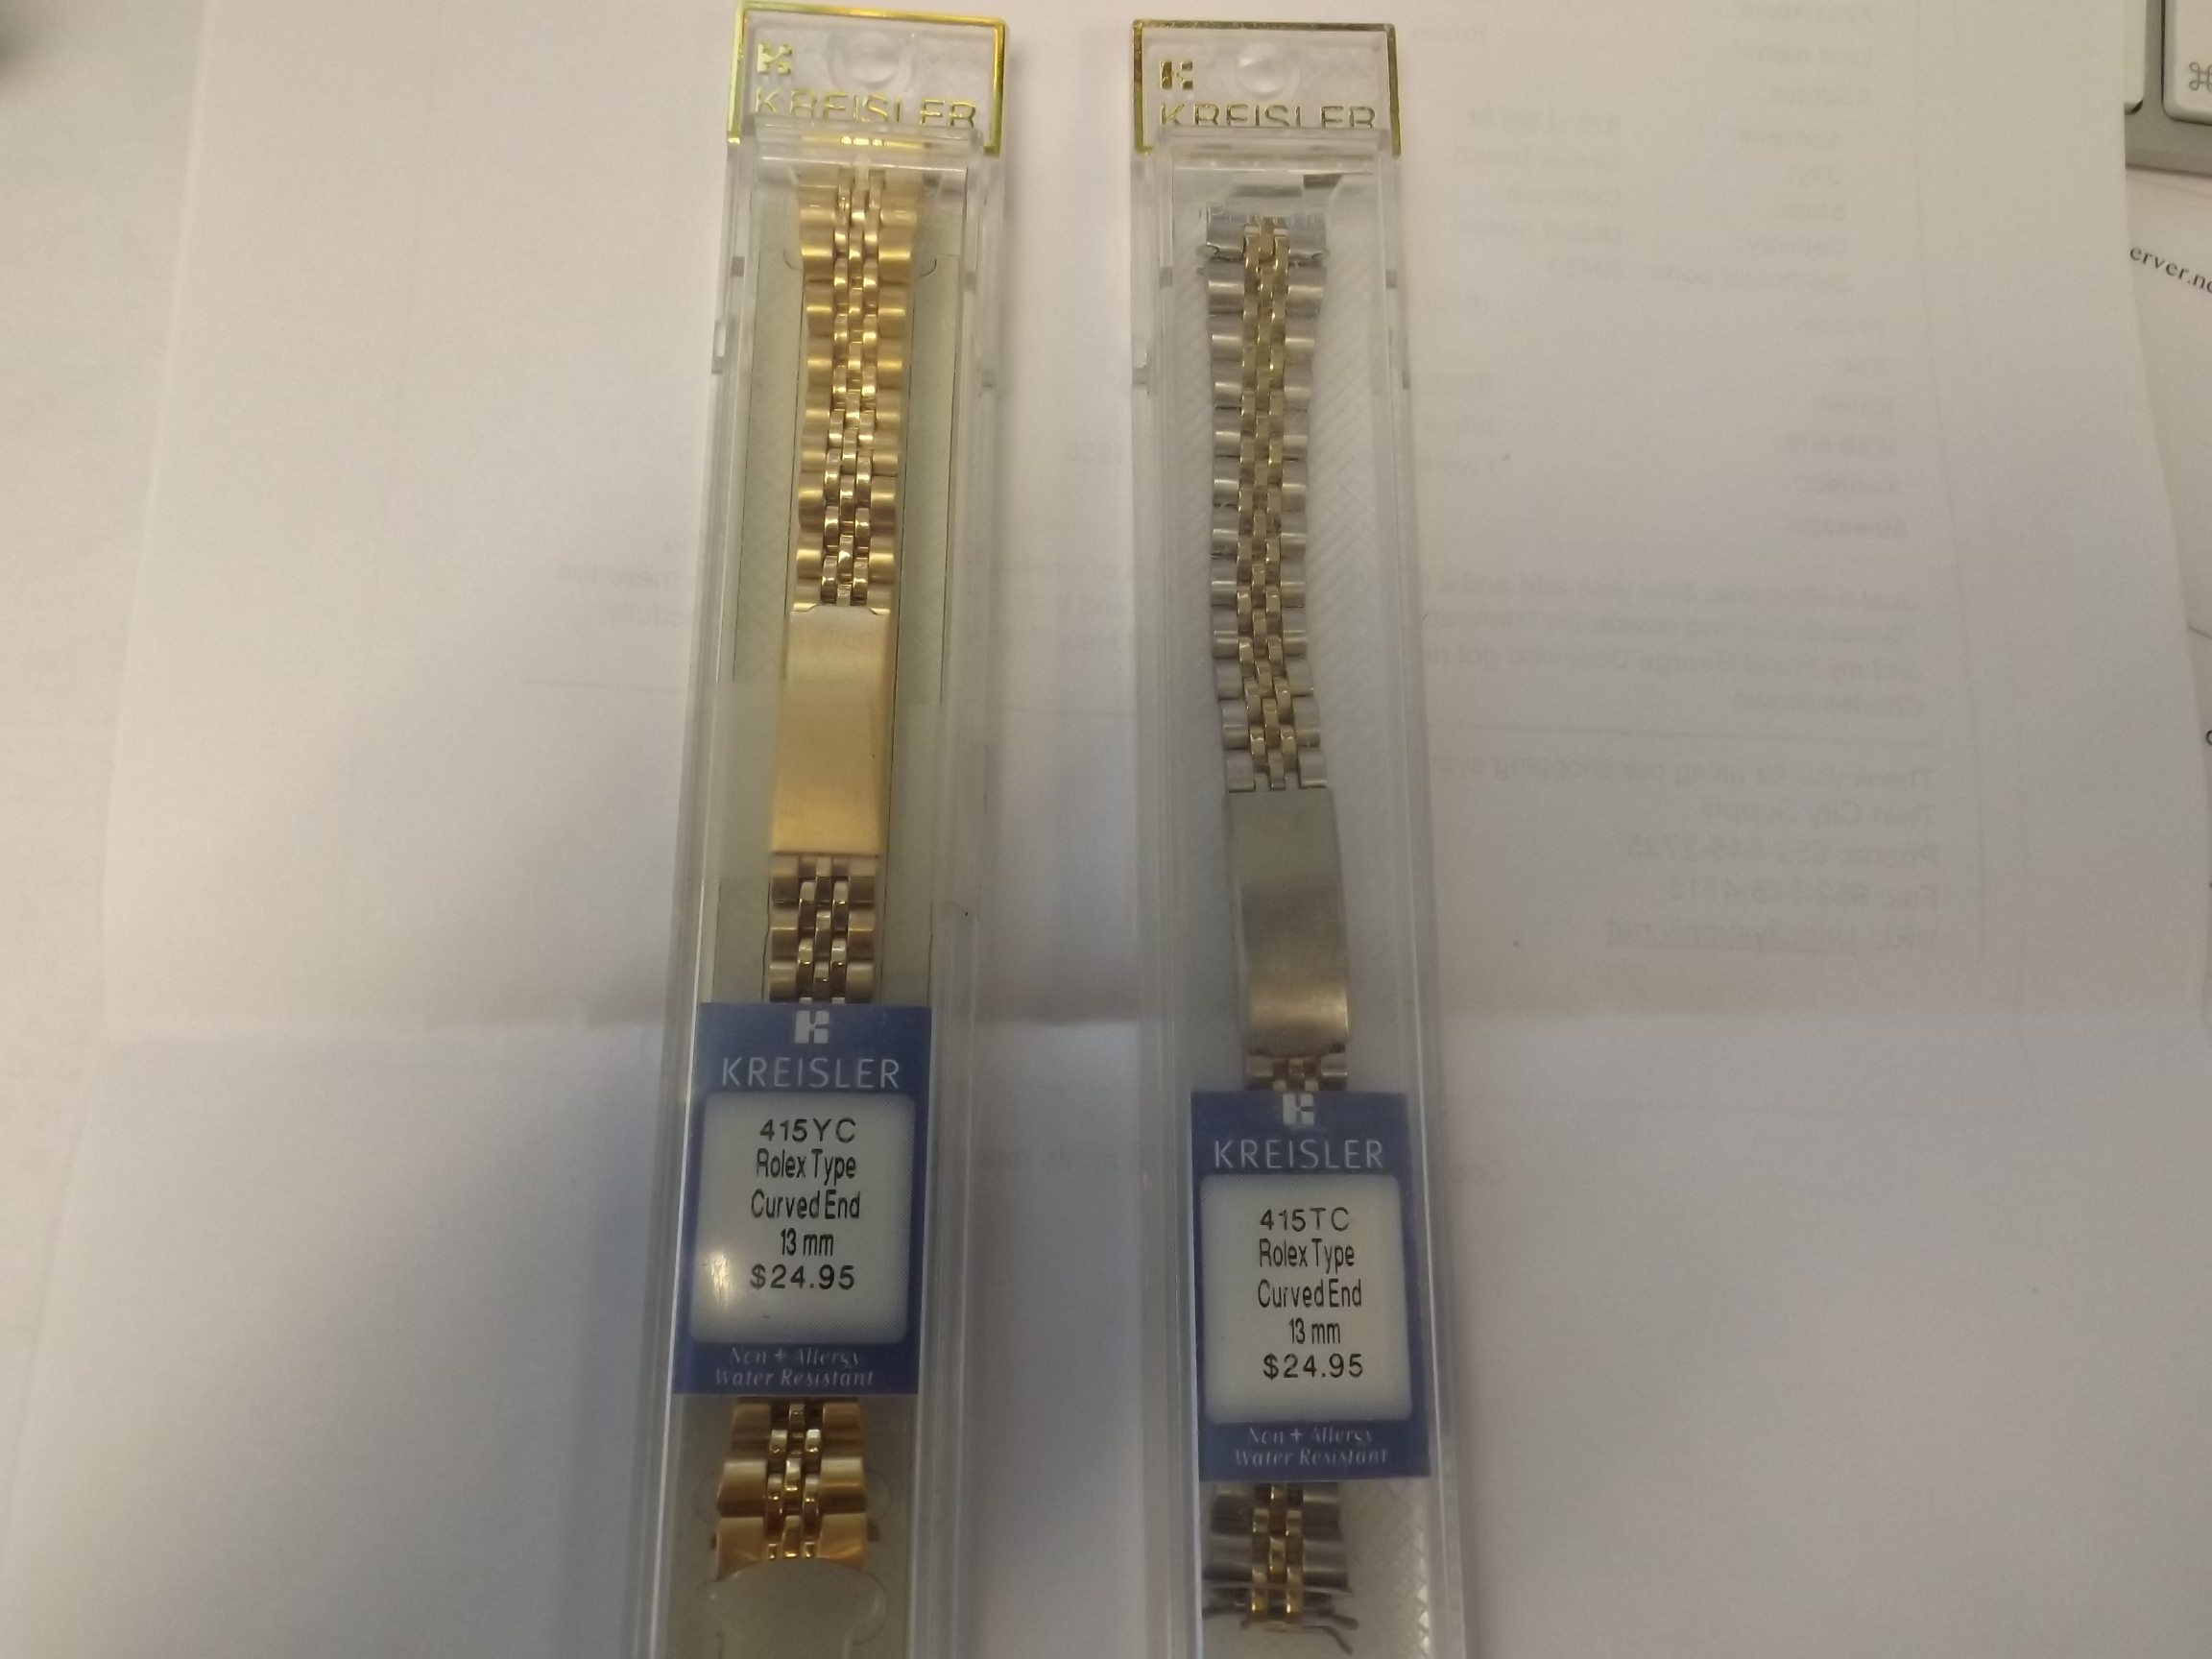 K415YC Kreisler Metal Watchband Yellow Ladies Rolex Style Curved End 13MM Closeout!